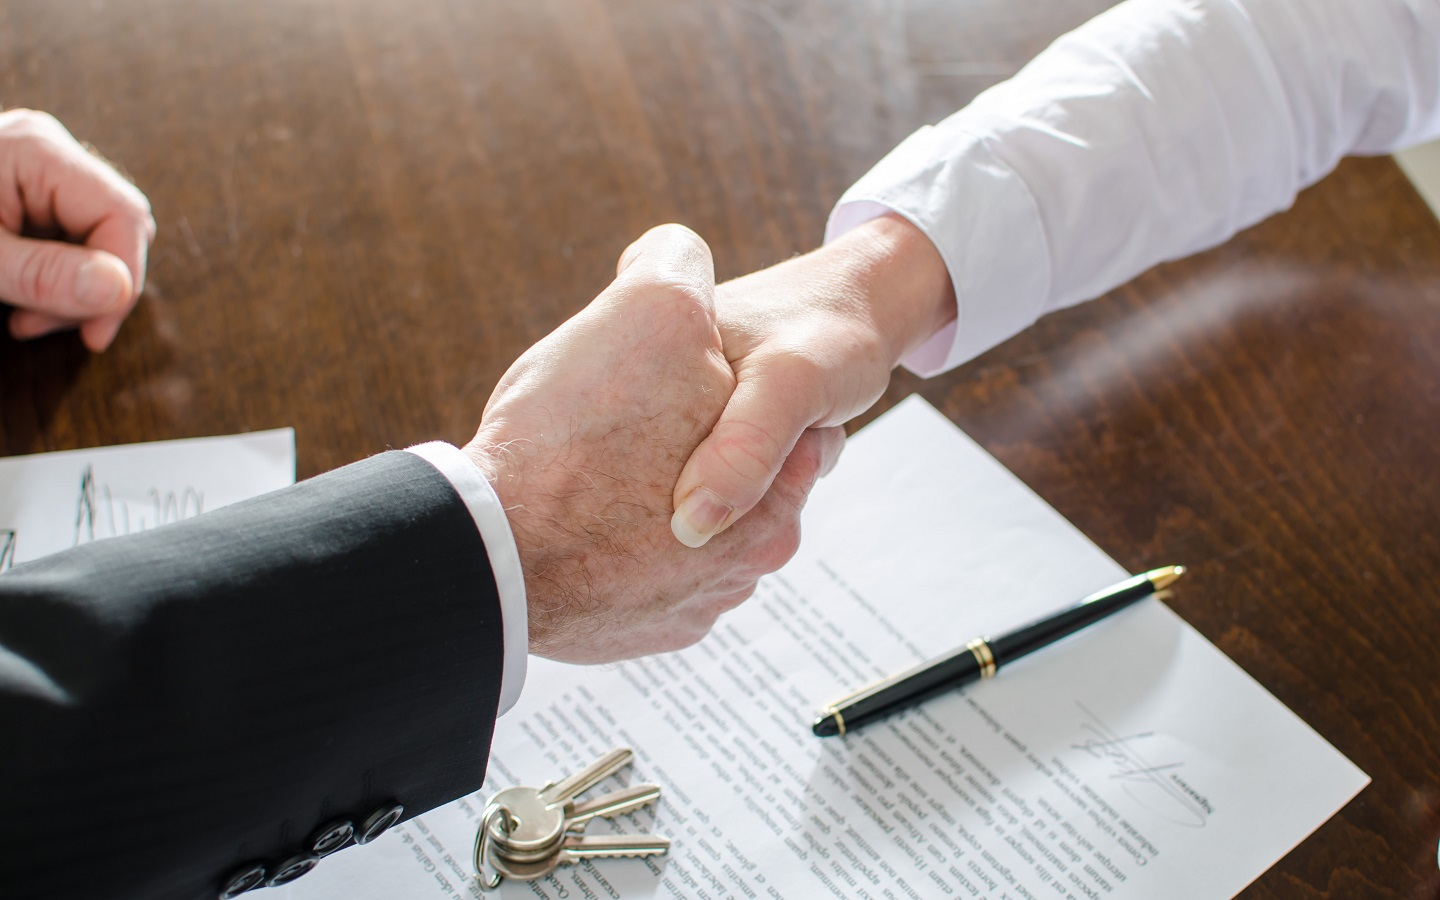 Men are shaking hand after signing a contract